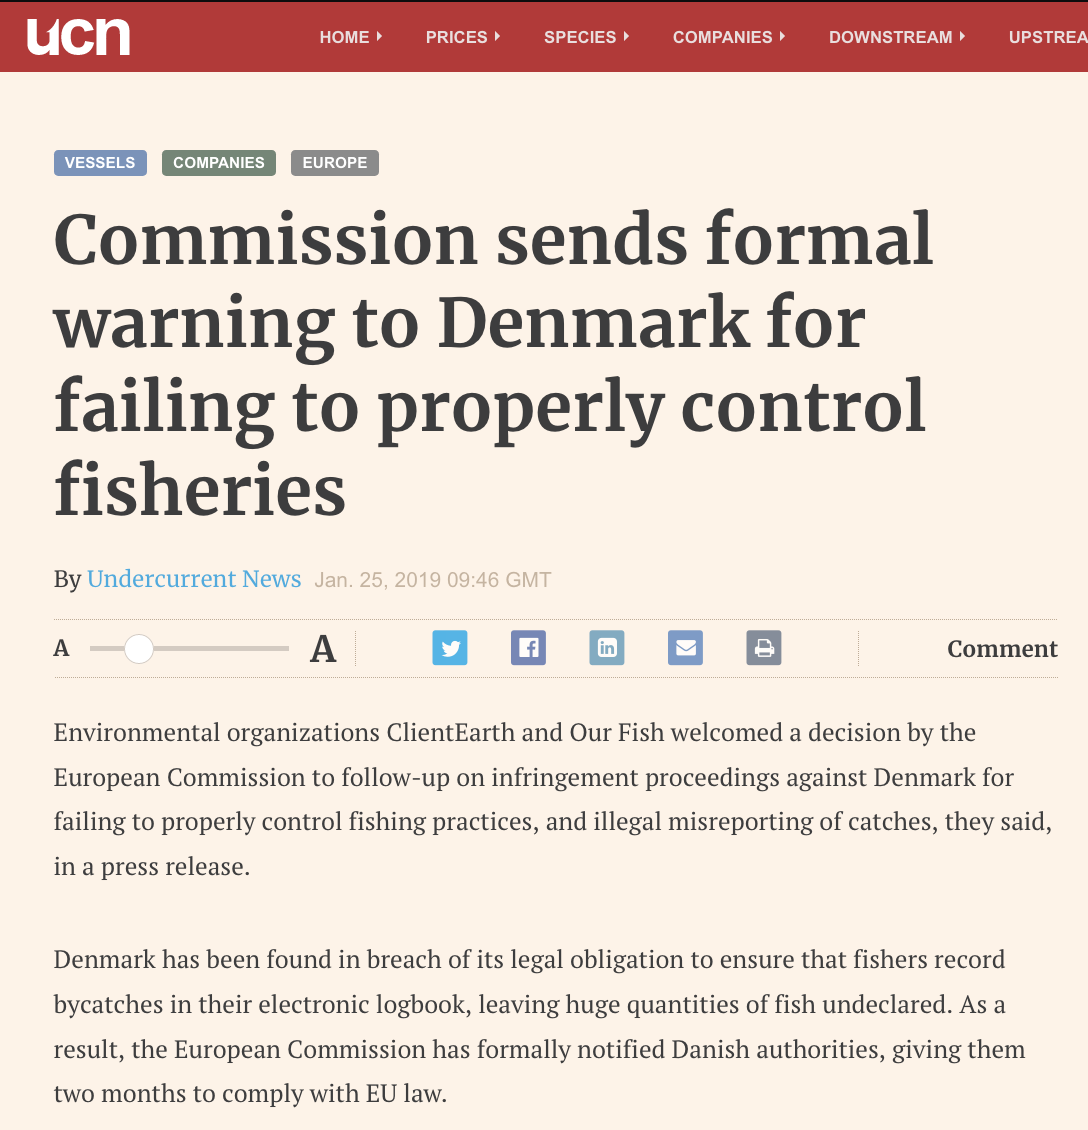 Commission sends formal warning to Denmark for failing to properly control fisheries